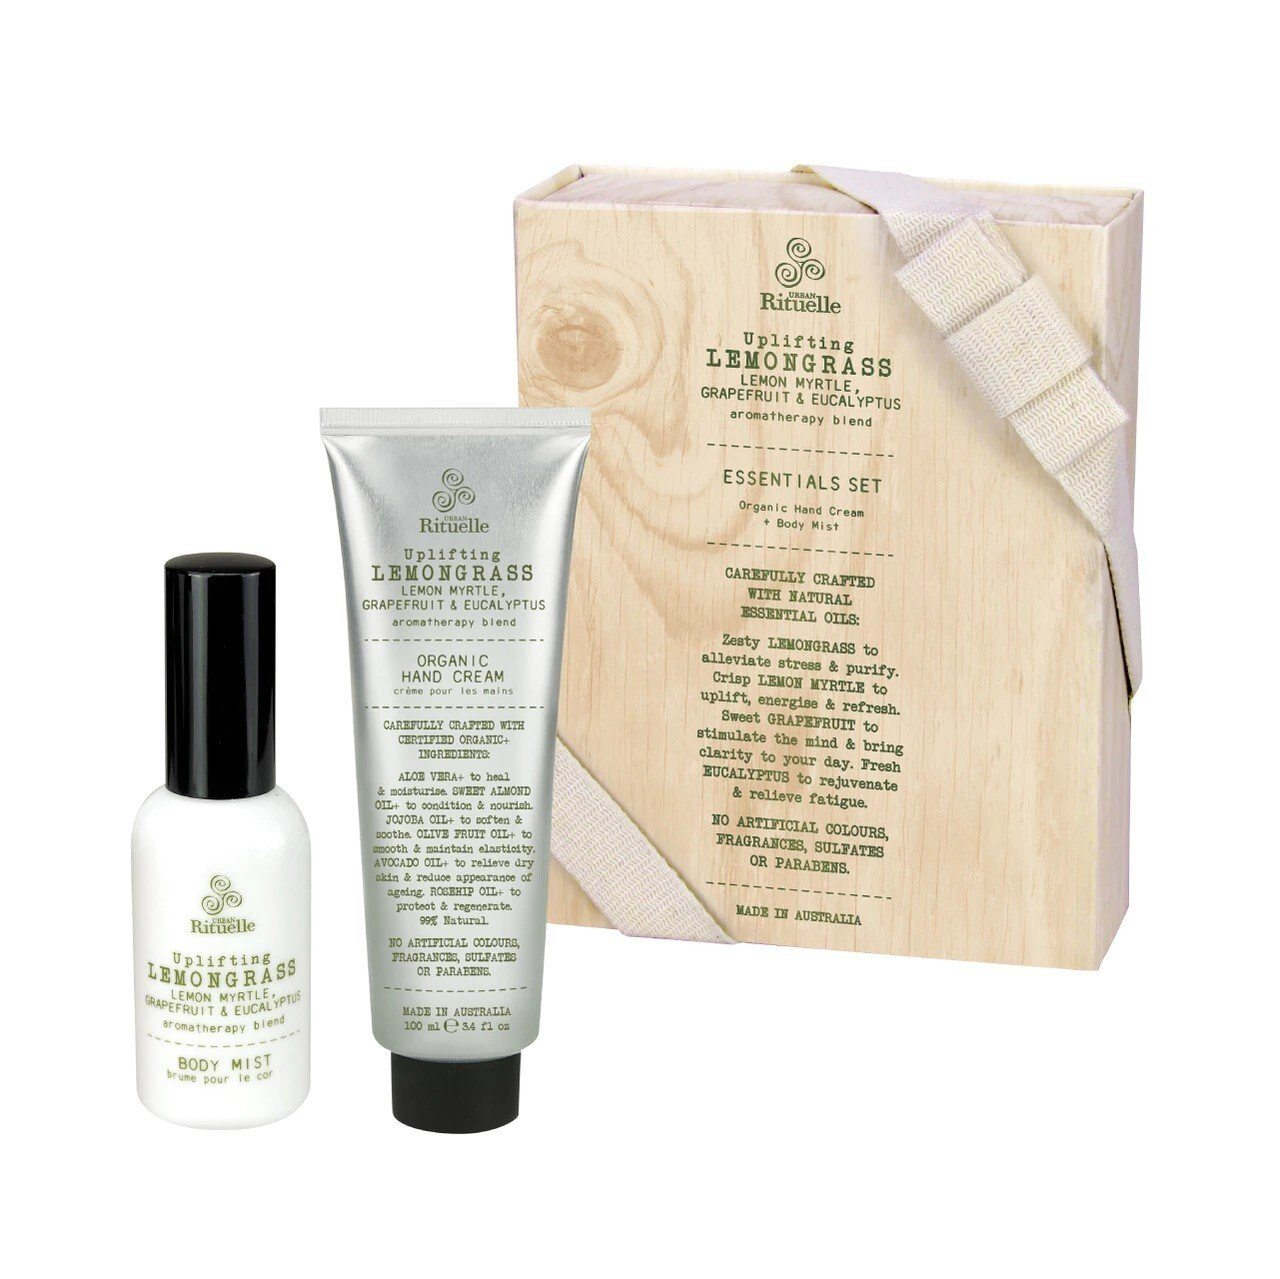 Urban Rituelle Flourish Organics Lemongrass, Lemon Myrtle, Grapefruit & Eucalyptus Blend Essentials Set Urban Rituelle